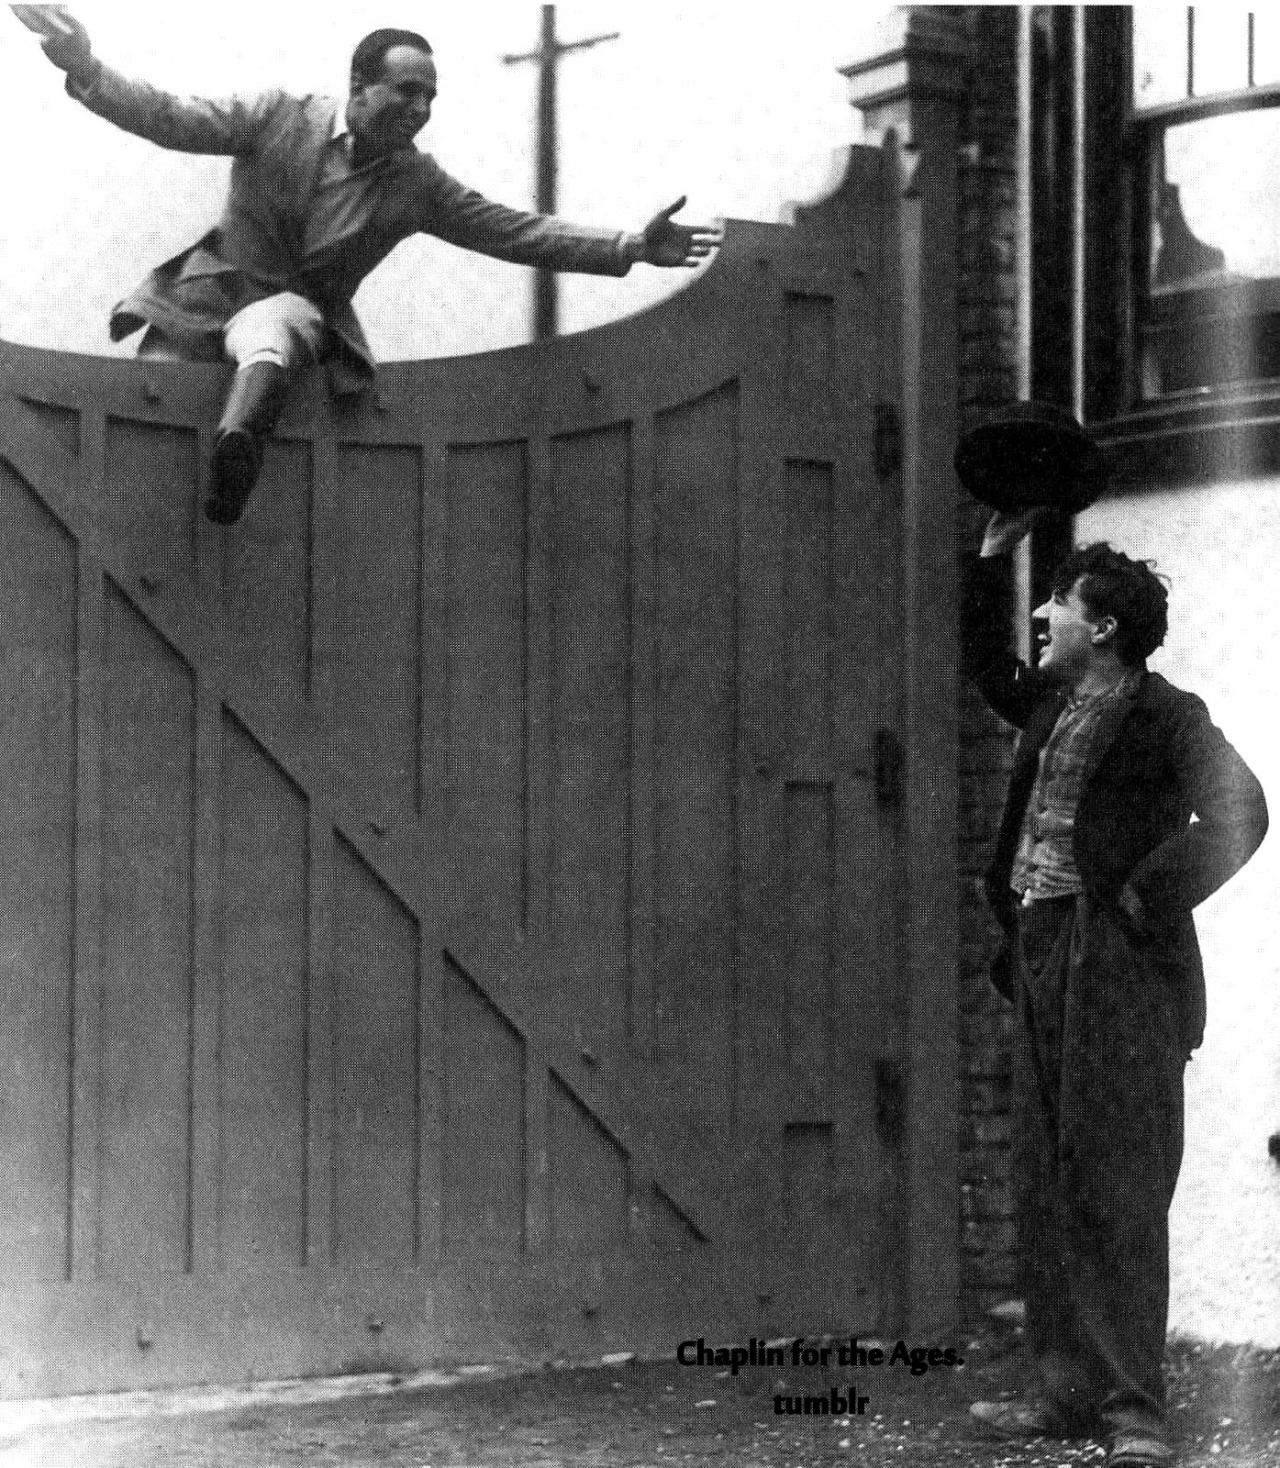 """Douglas Fairbanks Birthday Remembrance Born Douglas Elton Thomas Ullman 133 Years ago May 23rd 1883 """"Charlie Chaplin referred to him as"""" The best friend I ever had in Hollywood"""" """" Douglas Fairbanks passed away in 1939. 27 years later - According to..."""